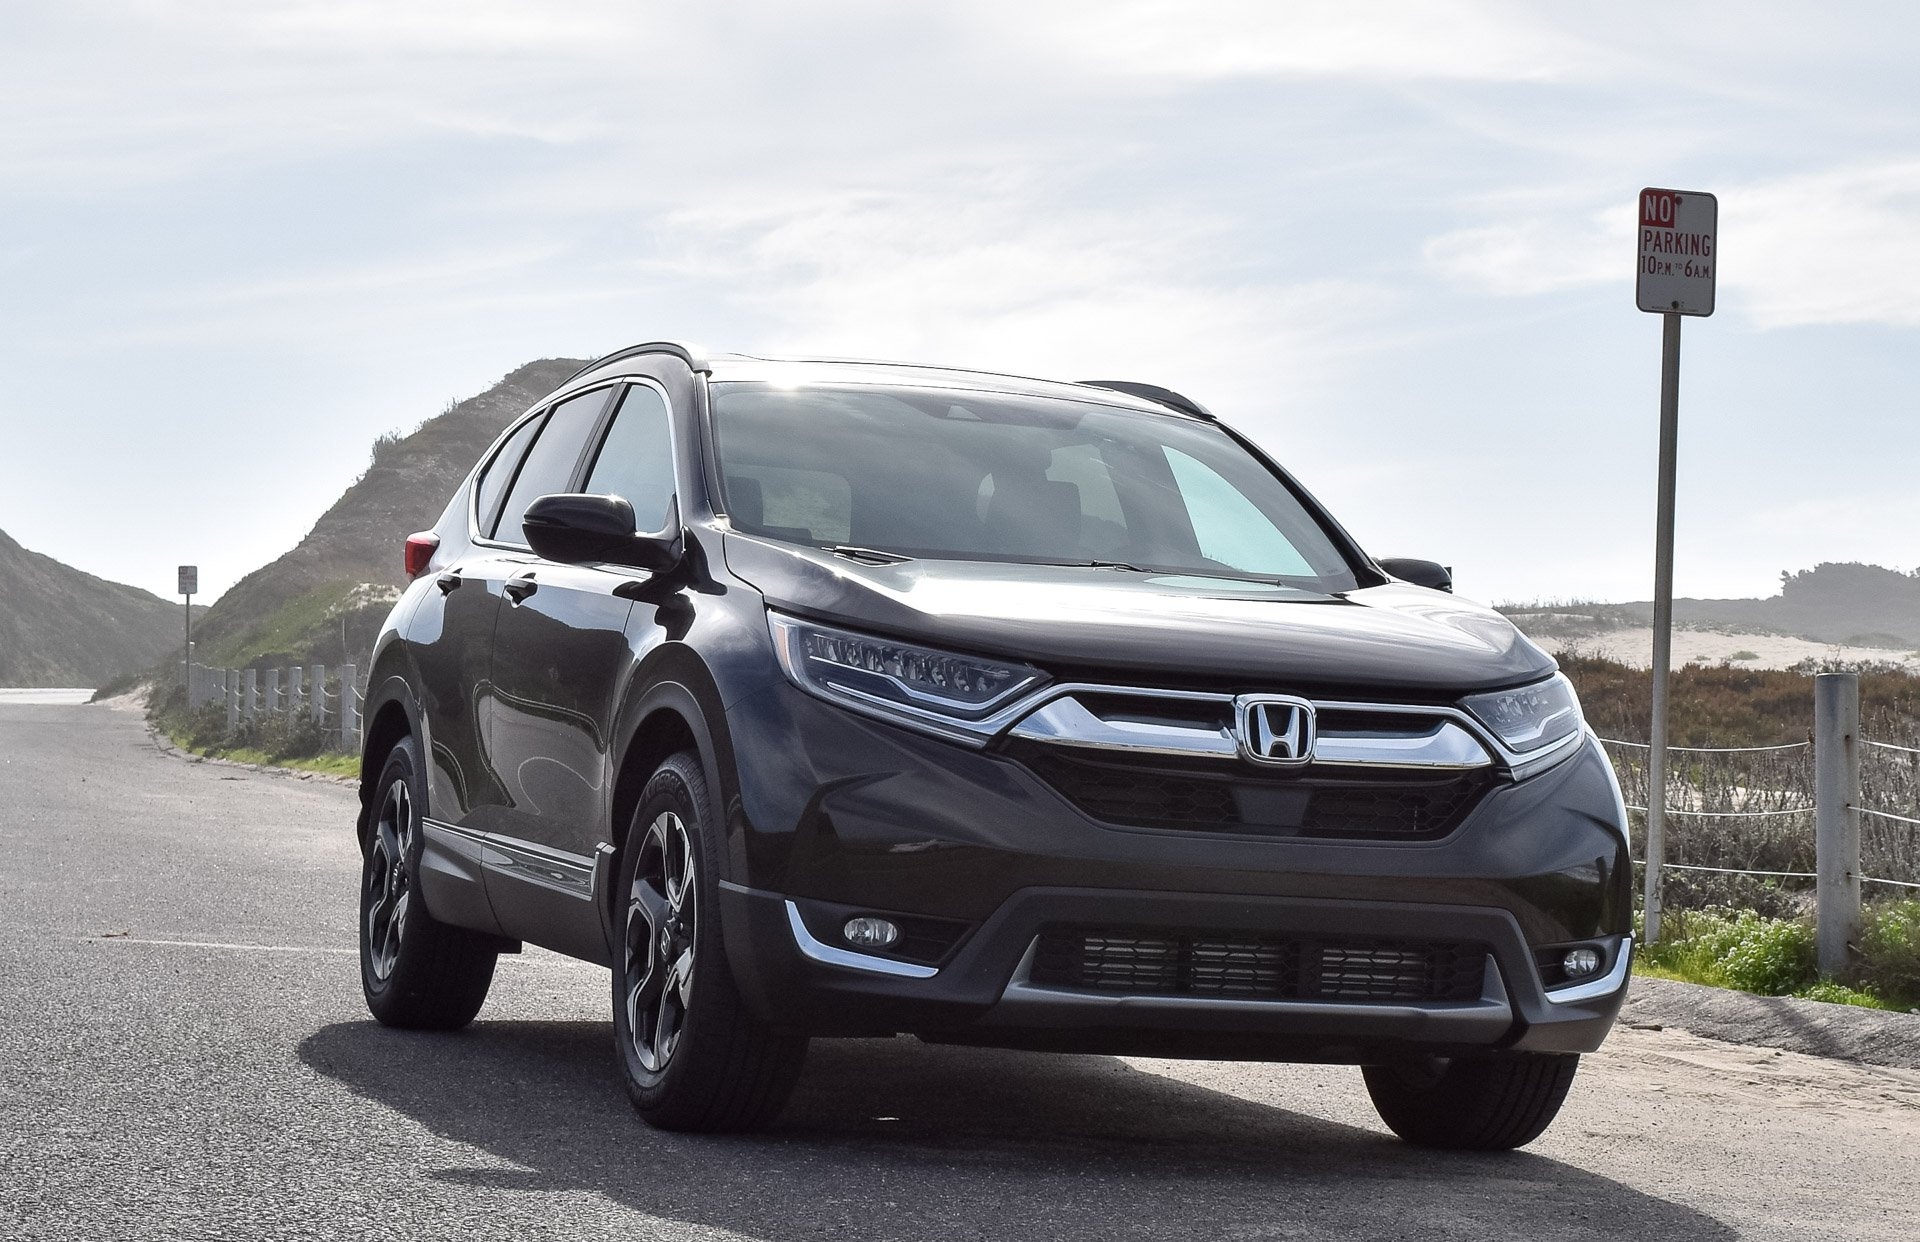 2017 Honda CR-V Review: Trusty, Fuel Sipping, and Practical